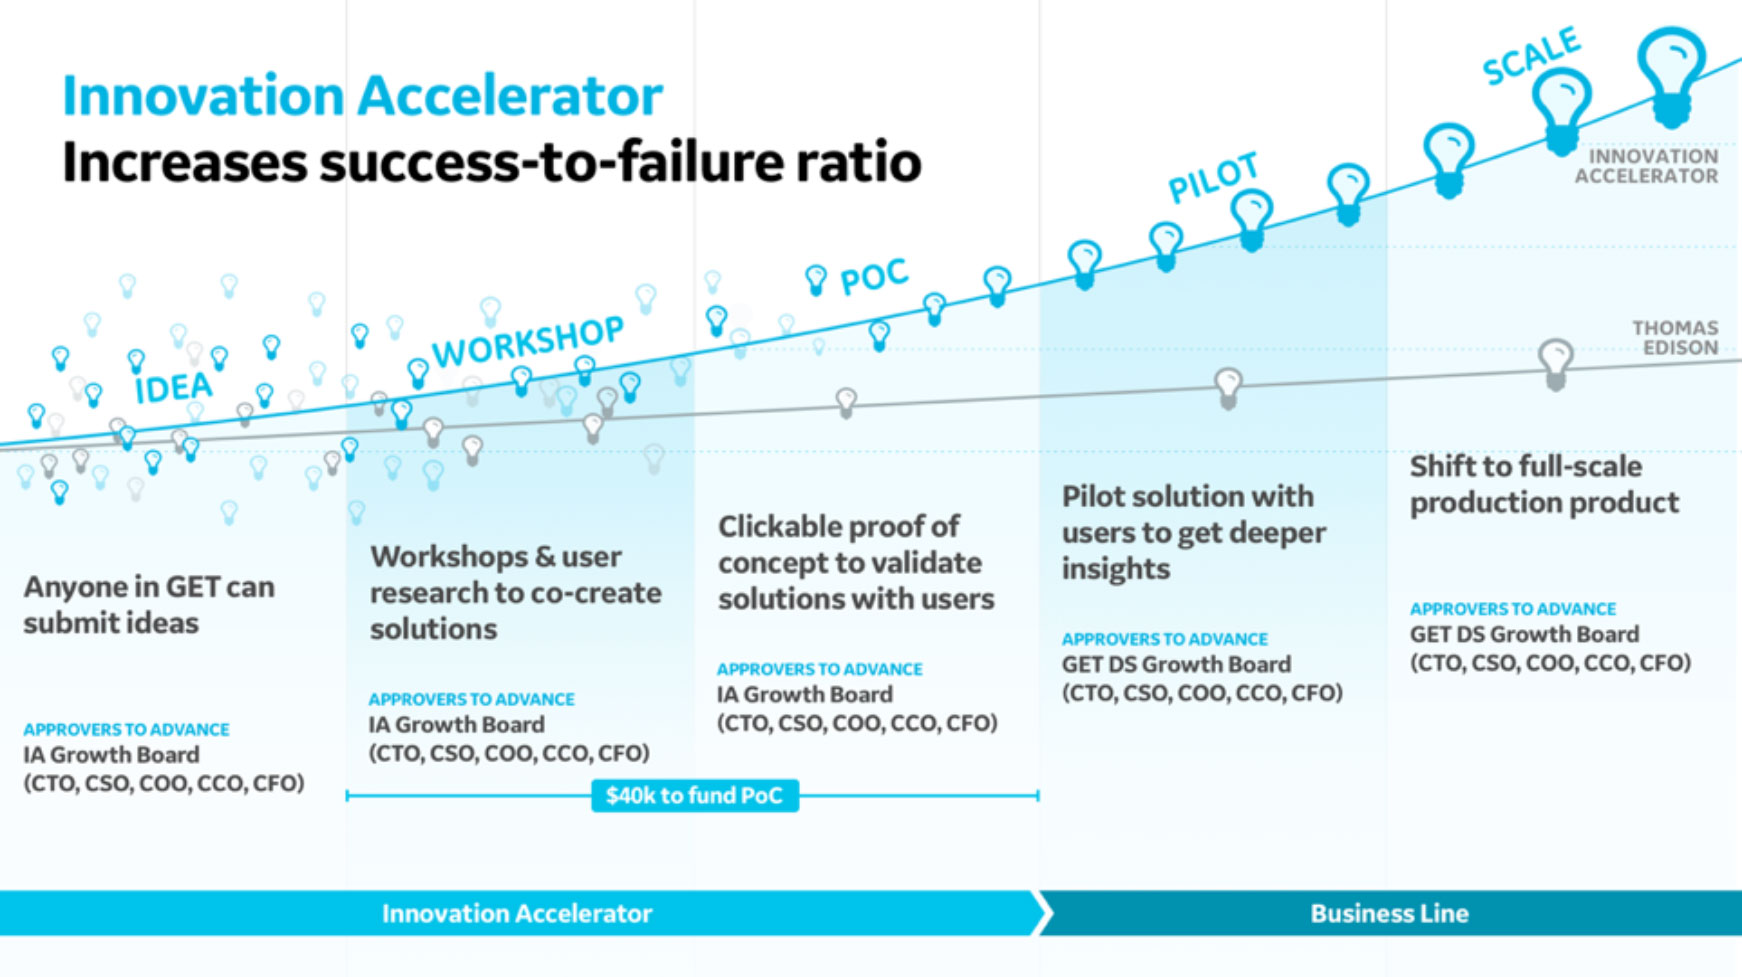 Innovation Accelerator - The Innovation Accelerator vision was presented to business leaders in order to transform our approach to R&D. By merging business strategy and design thinking, we're able to validate new innovations earlier and increase our success-to-failure ratio.